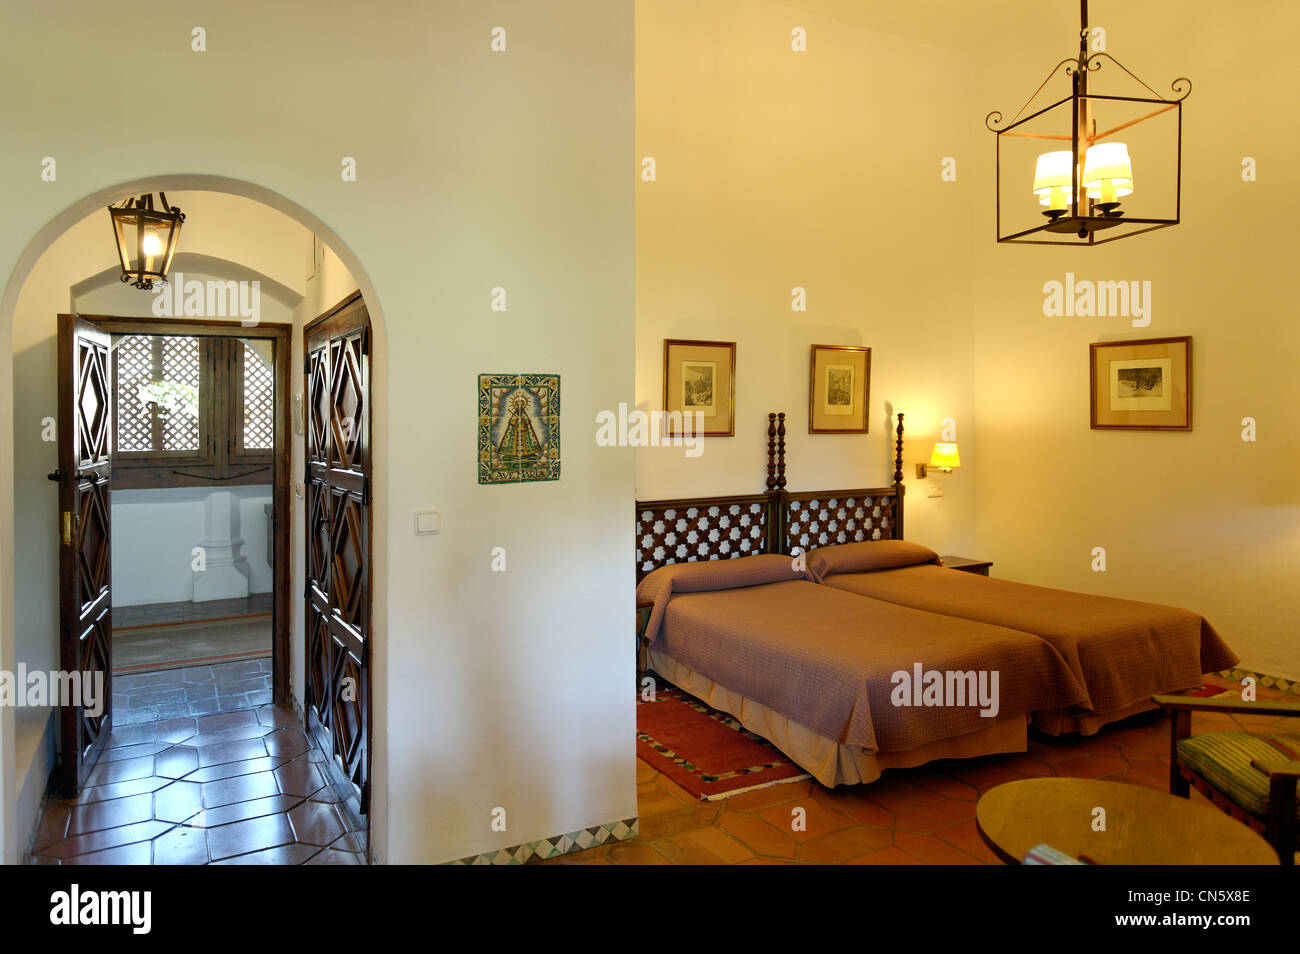 Spain, Extremadura, Guadalupe, Parador of Tourism, bedroom - Stock Image